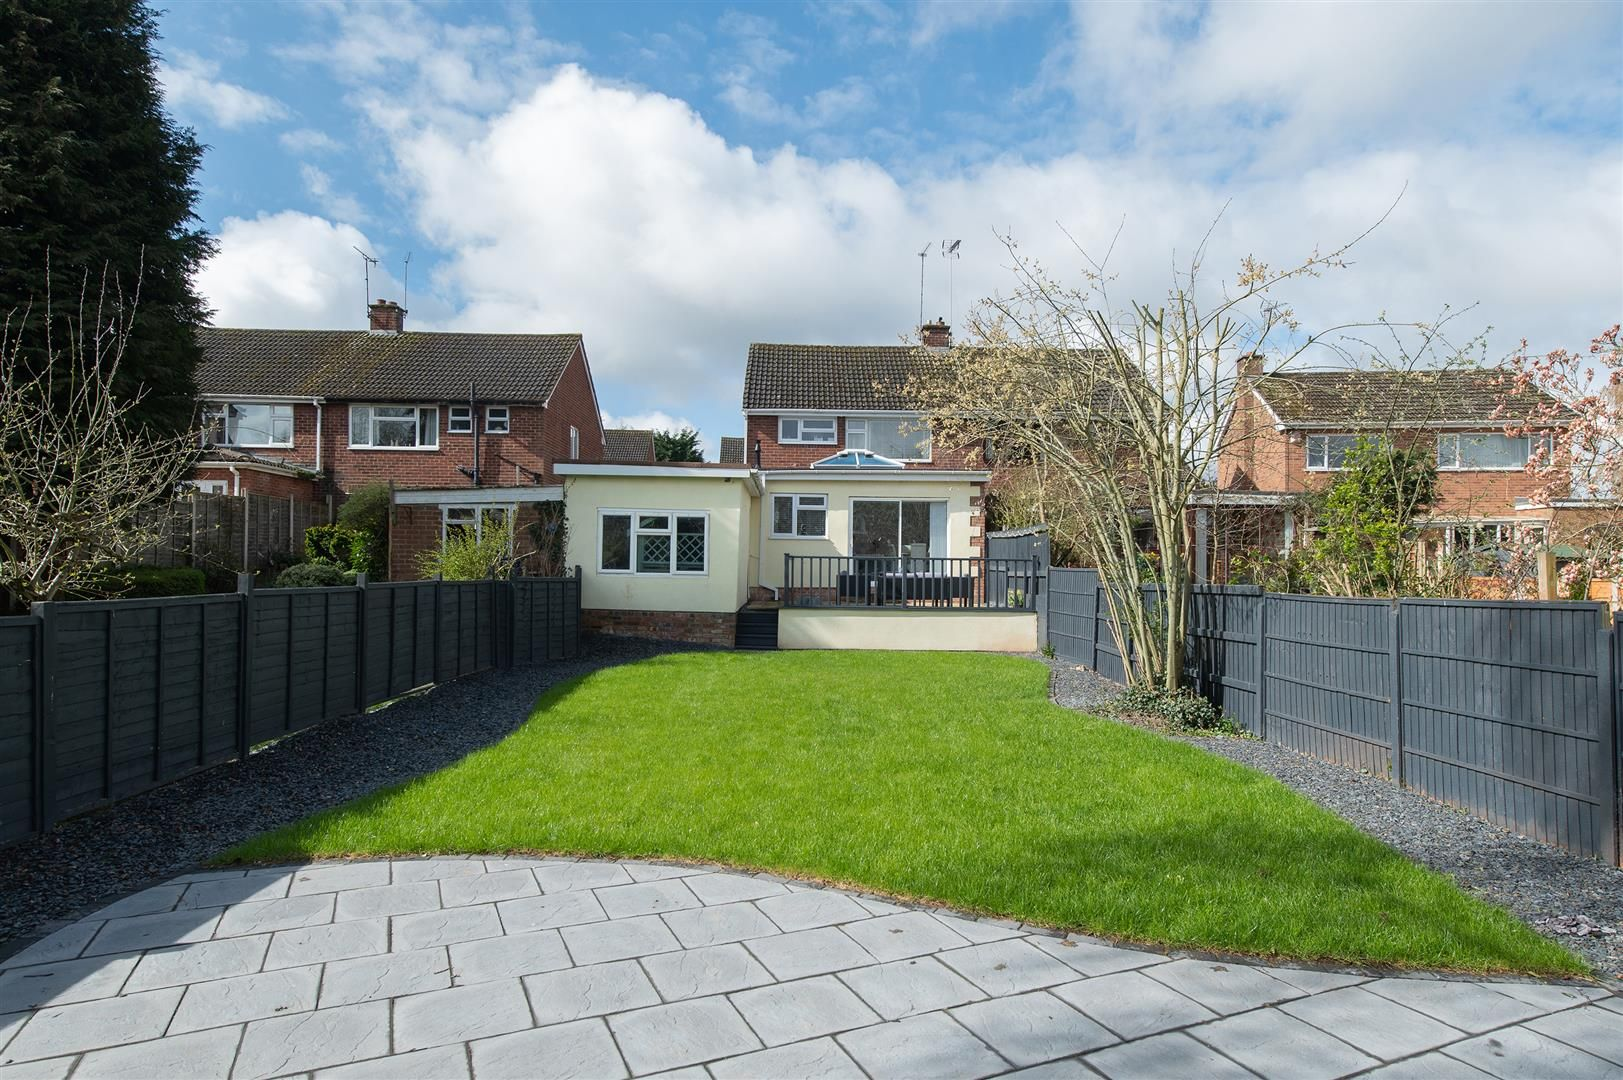 3 bed semi-detached for sale in Hagley 32